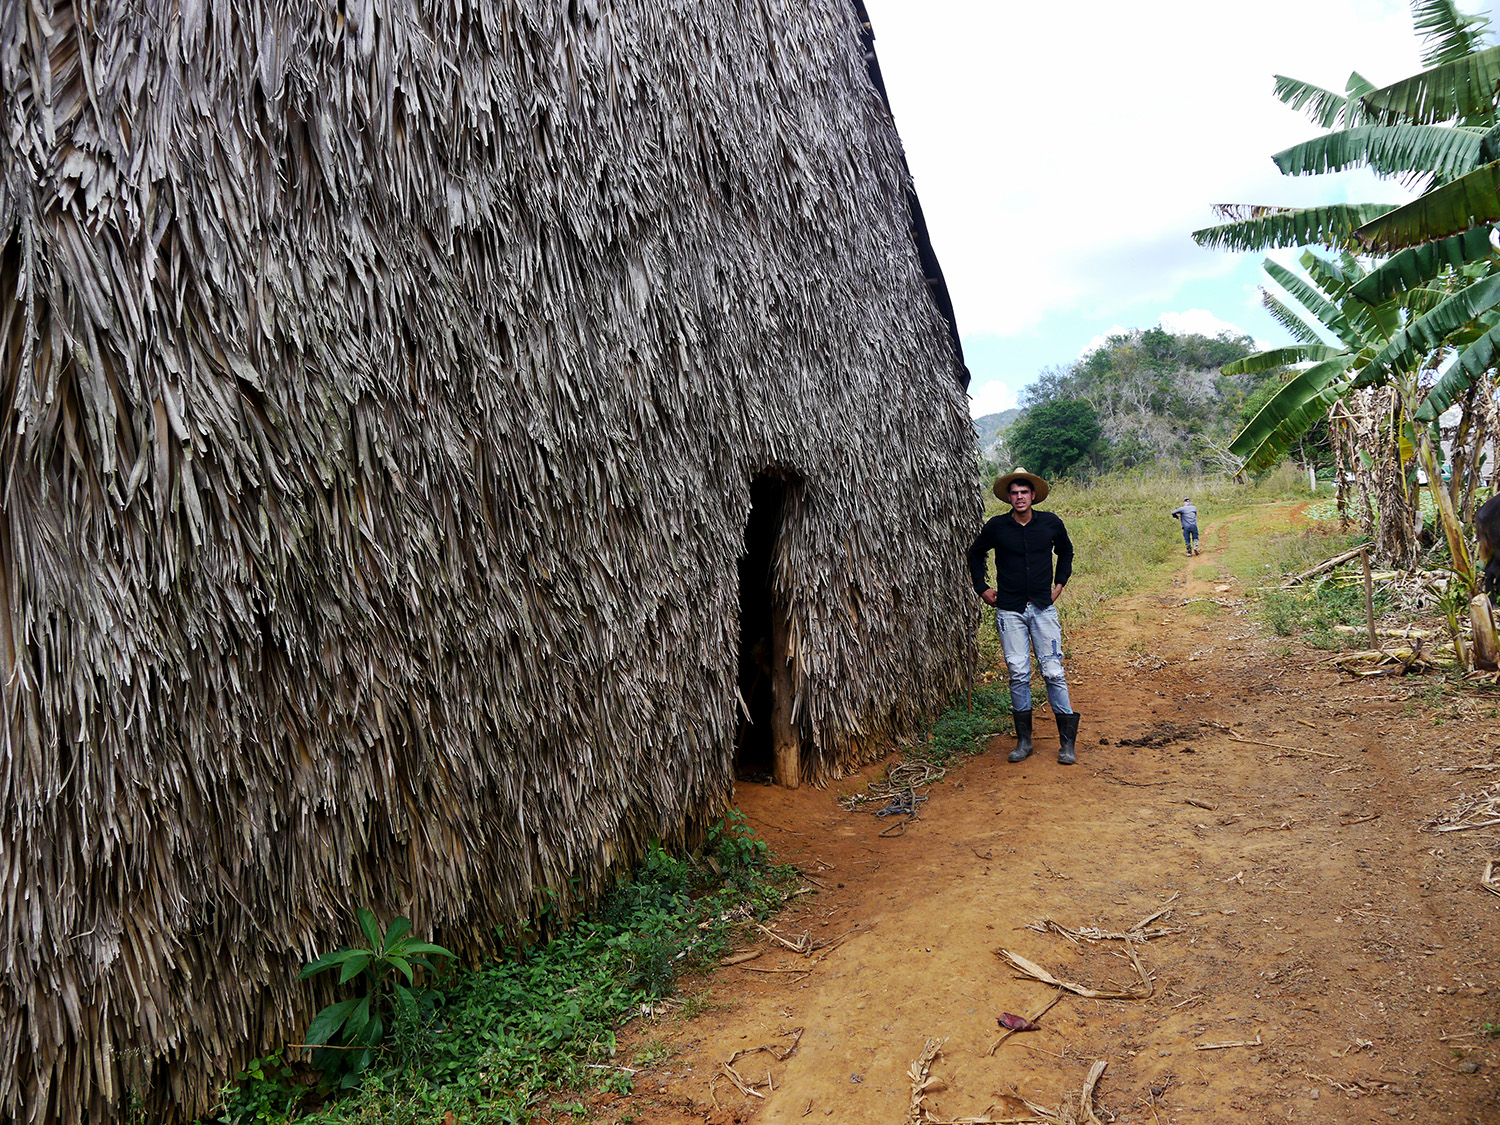 Farmer stands next to a thatched building.